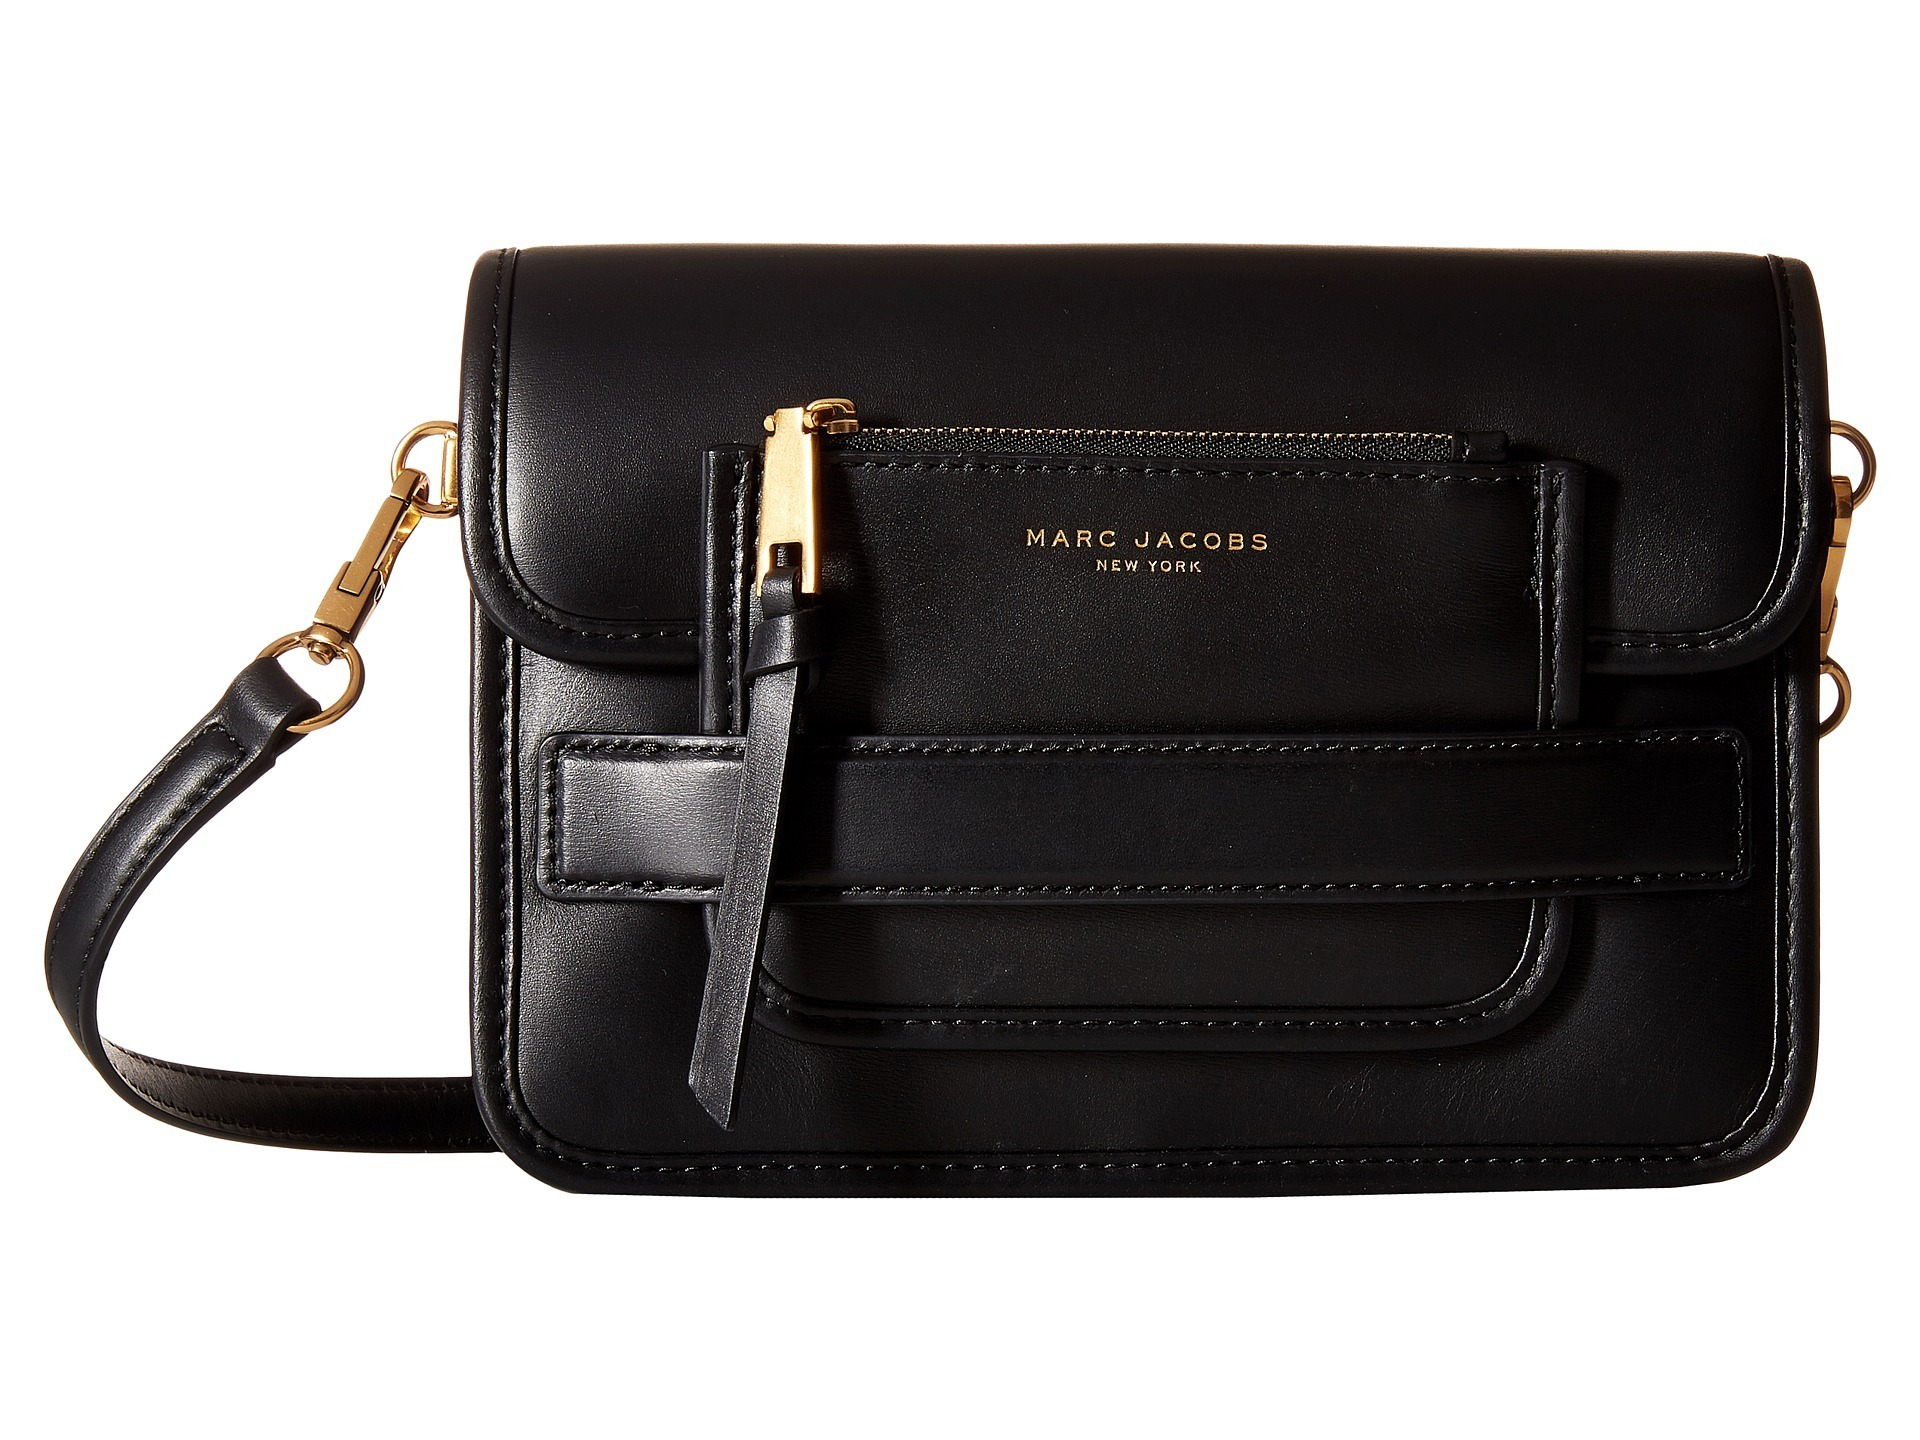 MARC JACOBS 正規品 大人気Madison Medium Shoulder 送料無料